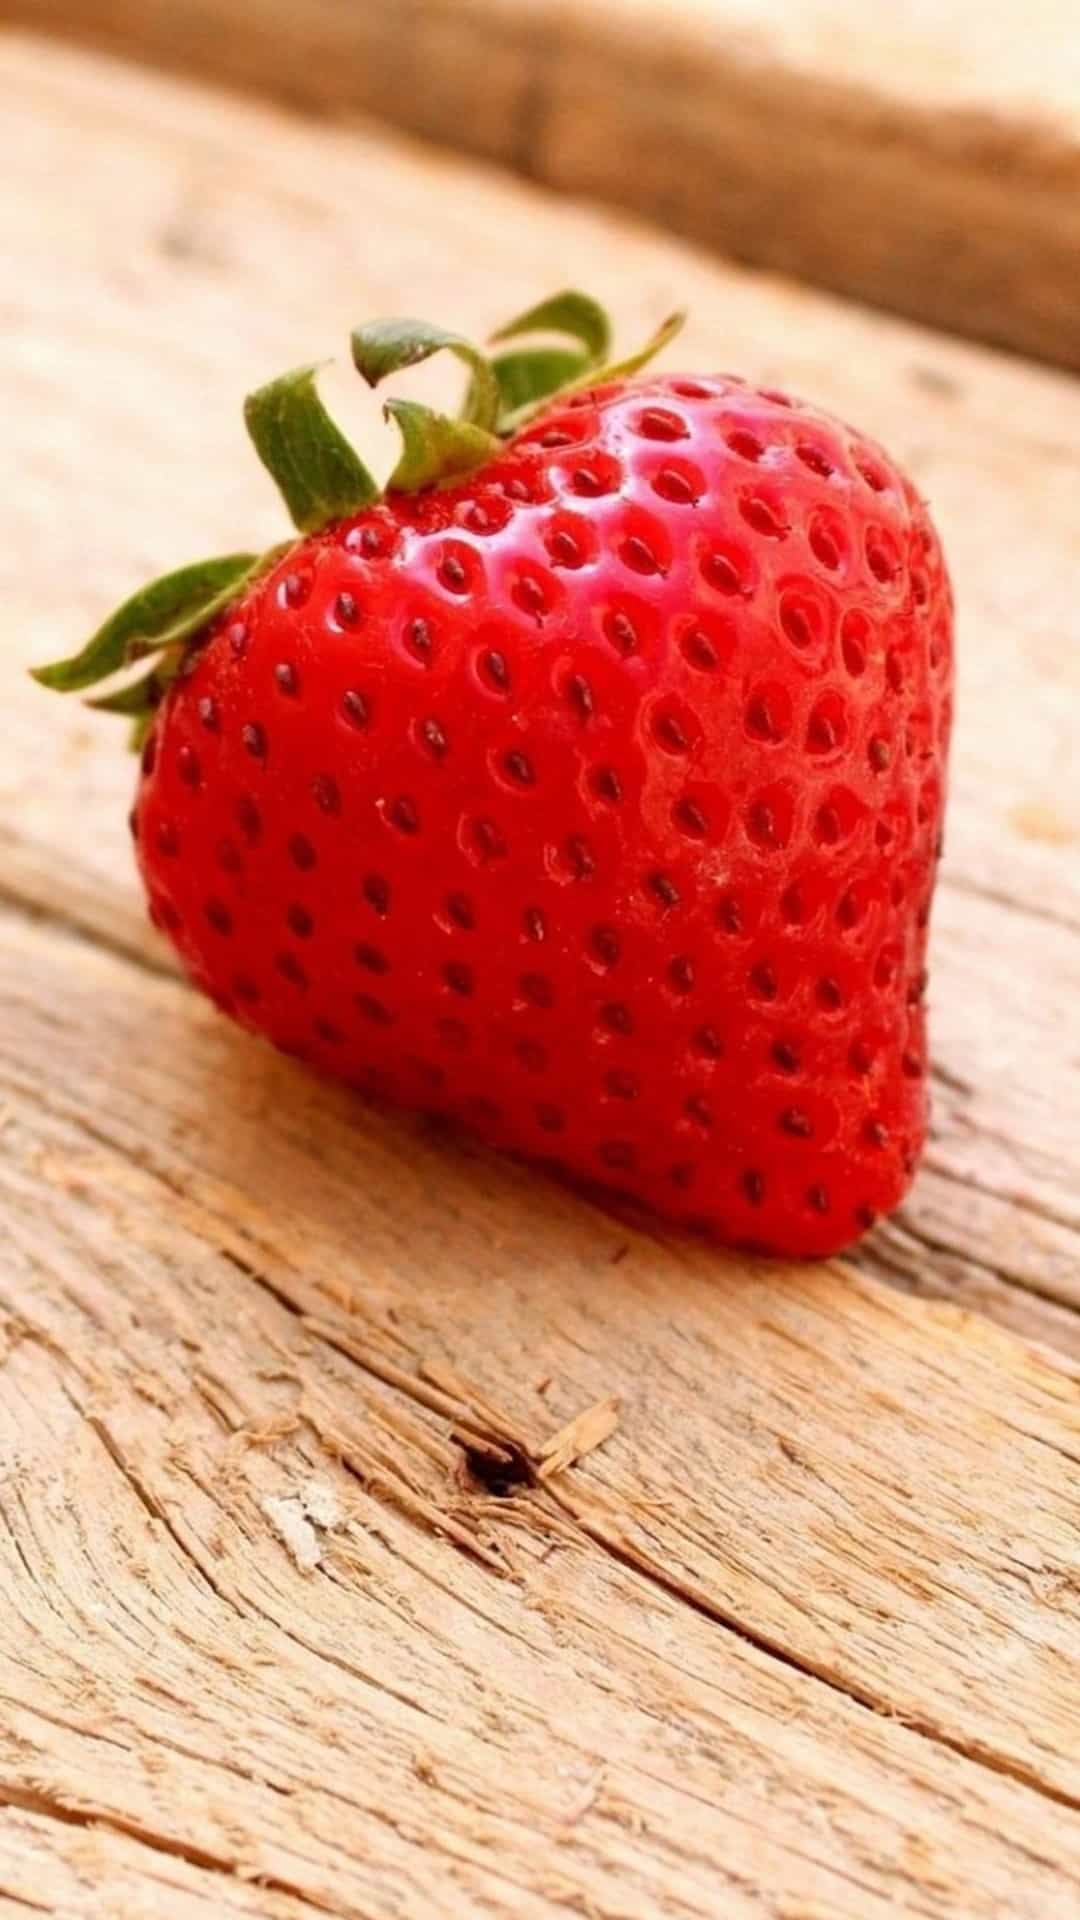 Strawberry Close Up Wood Android Wallpaper